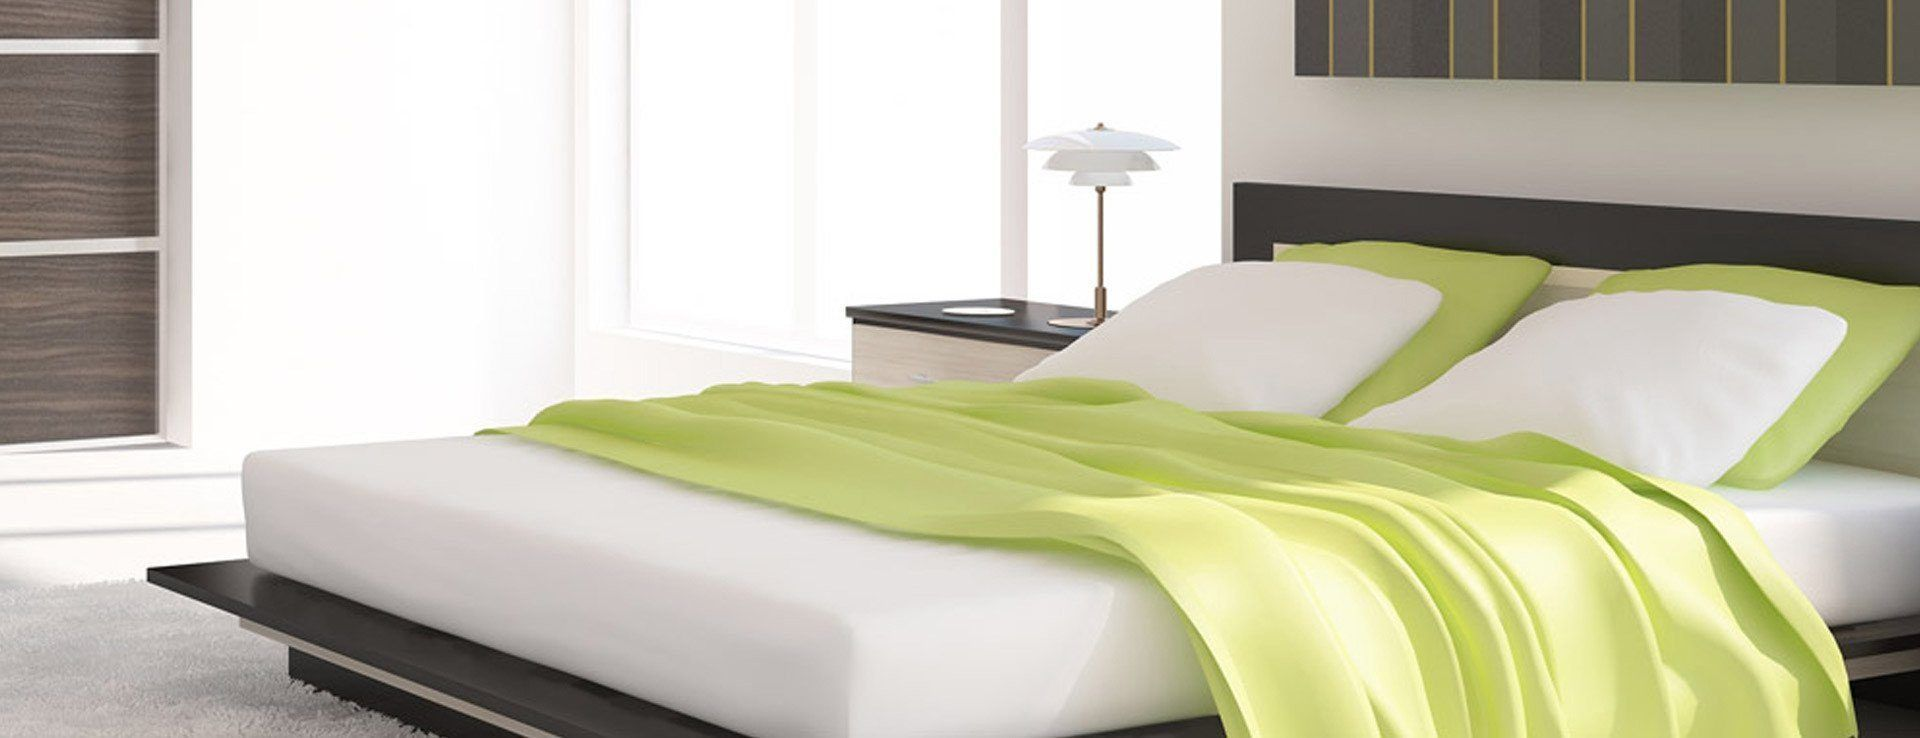 HOW TO SET UP A MATTRESS RETAIL BUSINESS IN NIGERIA